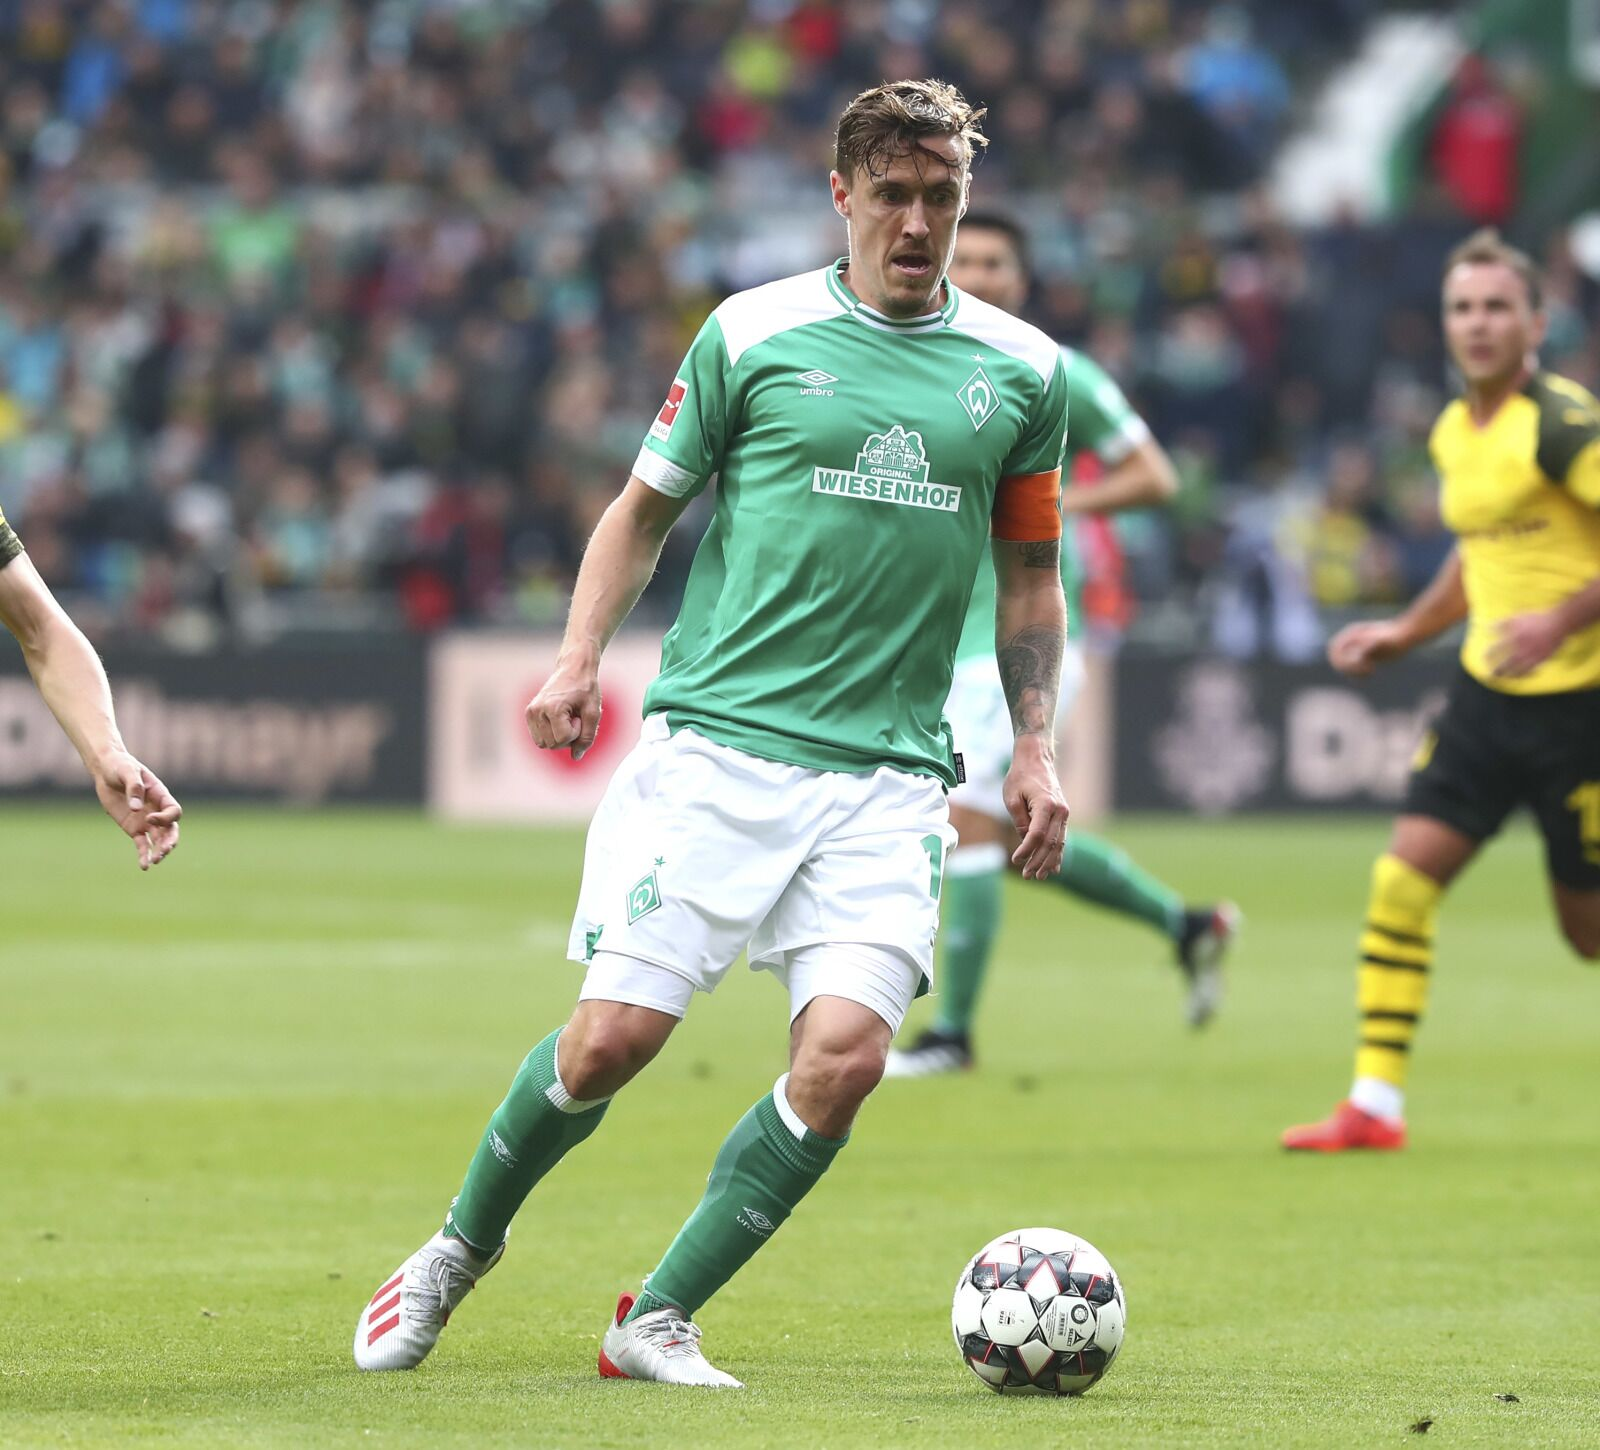 Bayern Munich are reportedly considering signing Max Kruse